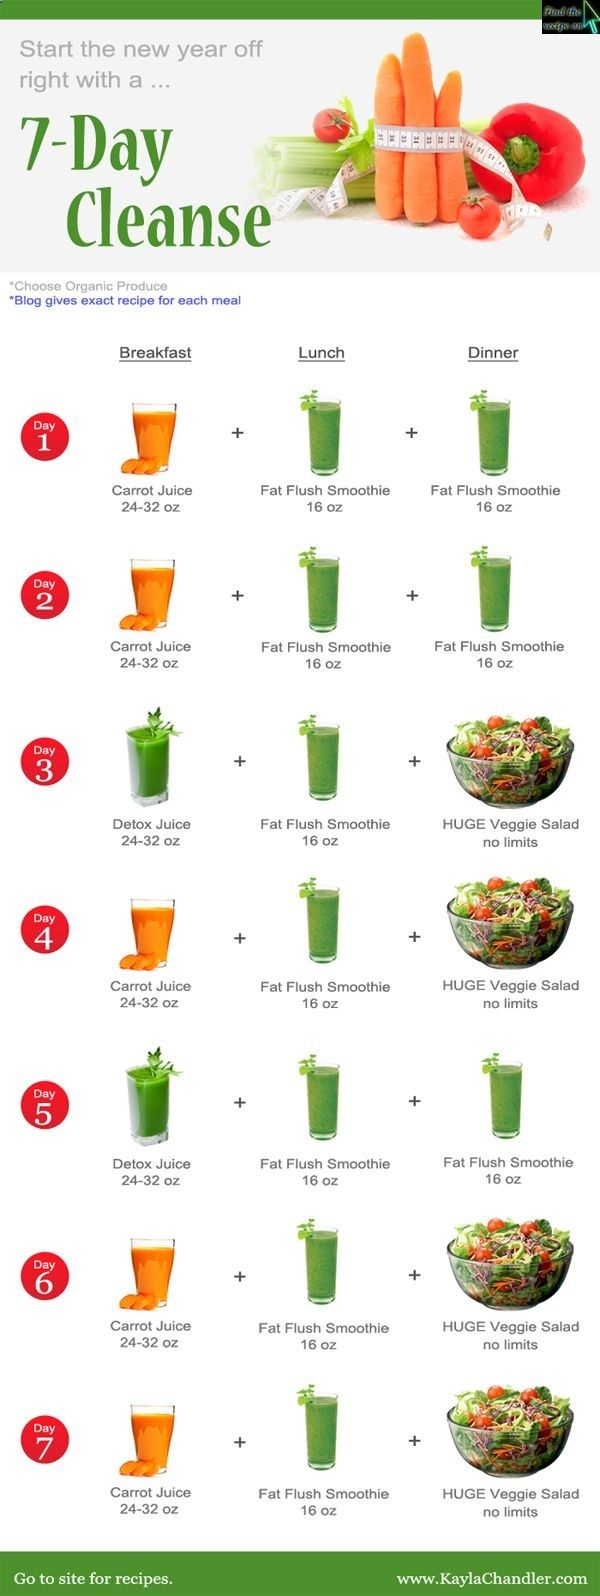 Start the New Year Off Right with a 7-Day Detox Cleanse (and lose weight!)